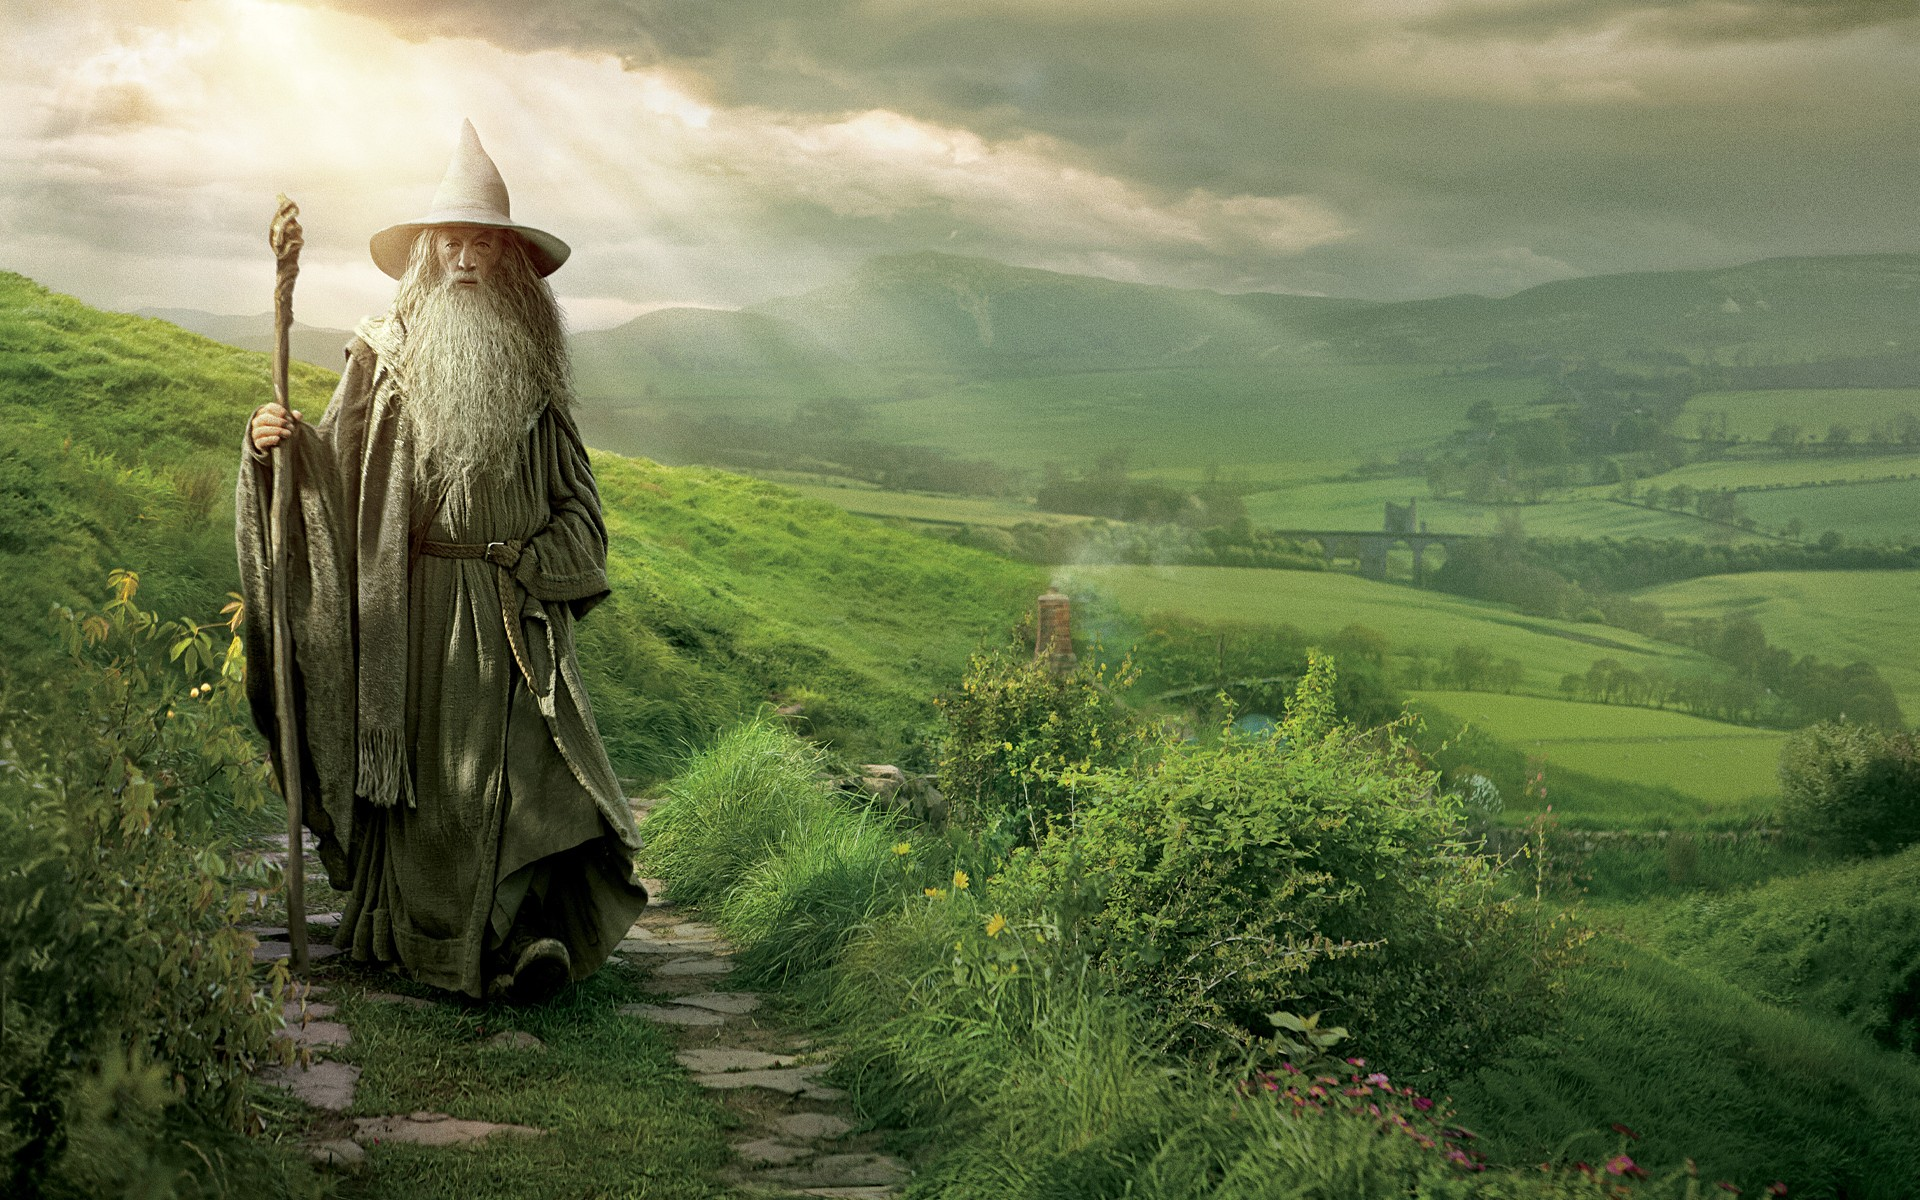 Lord of the Rings Wallpaper Set 3 | Awesome Wallpapers